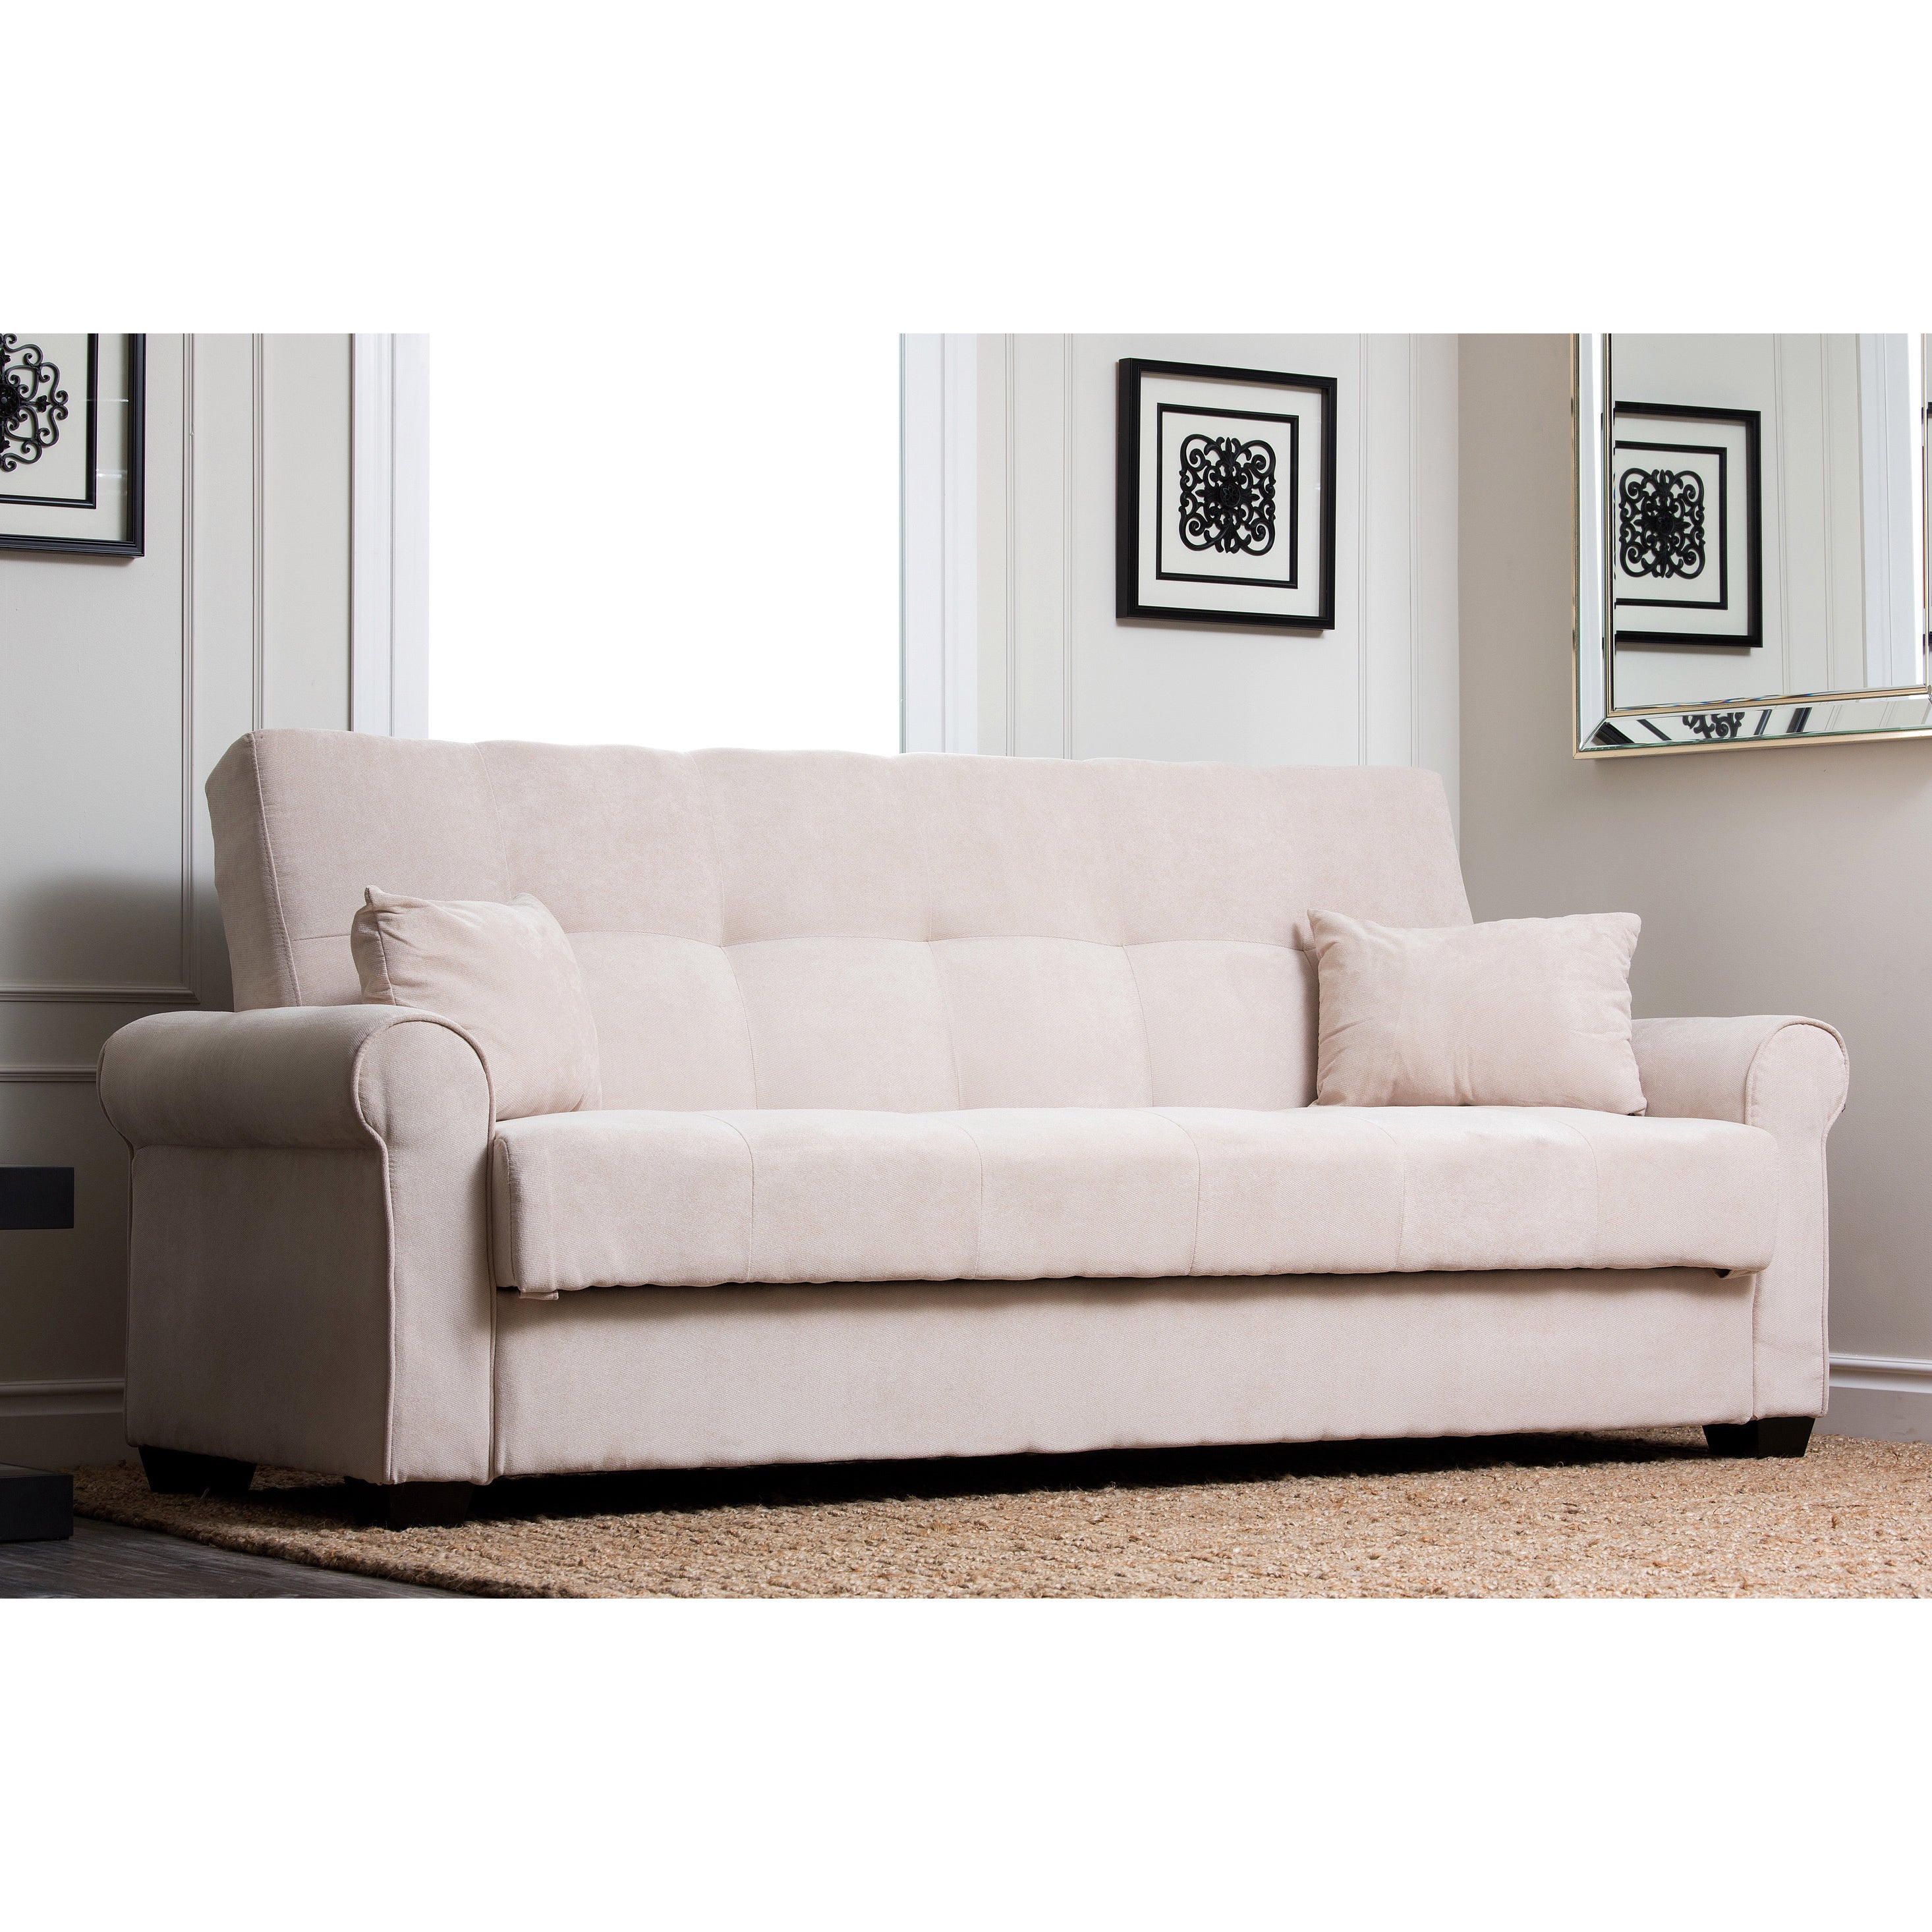 Sofa Bed Deals: ABBYSON LIVING Amy Fabric Sleeper Sofa Bed